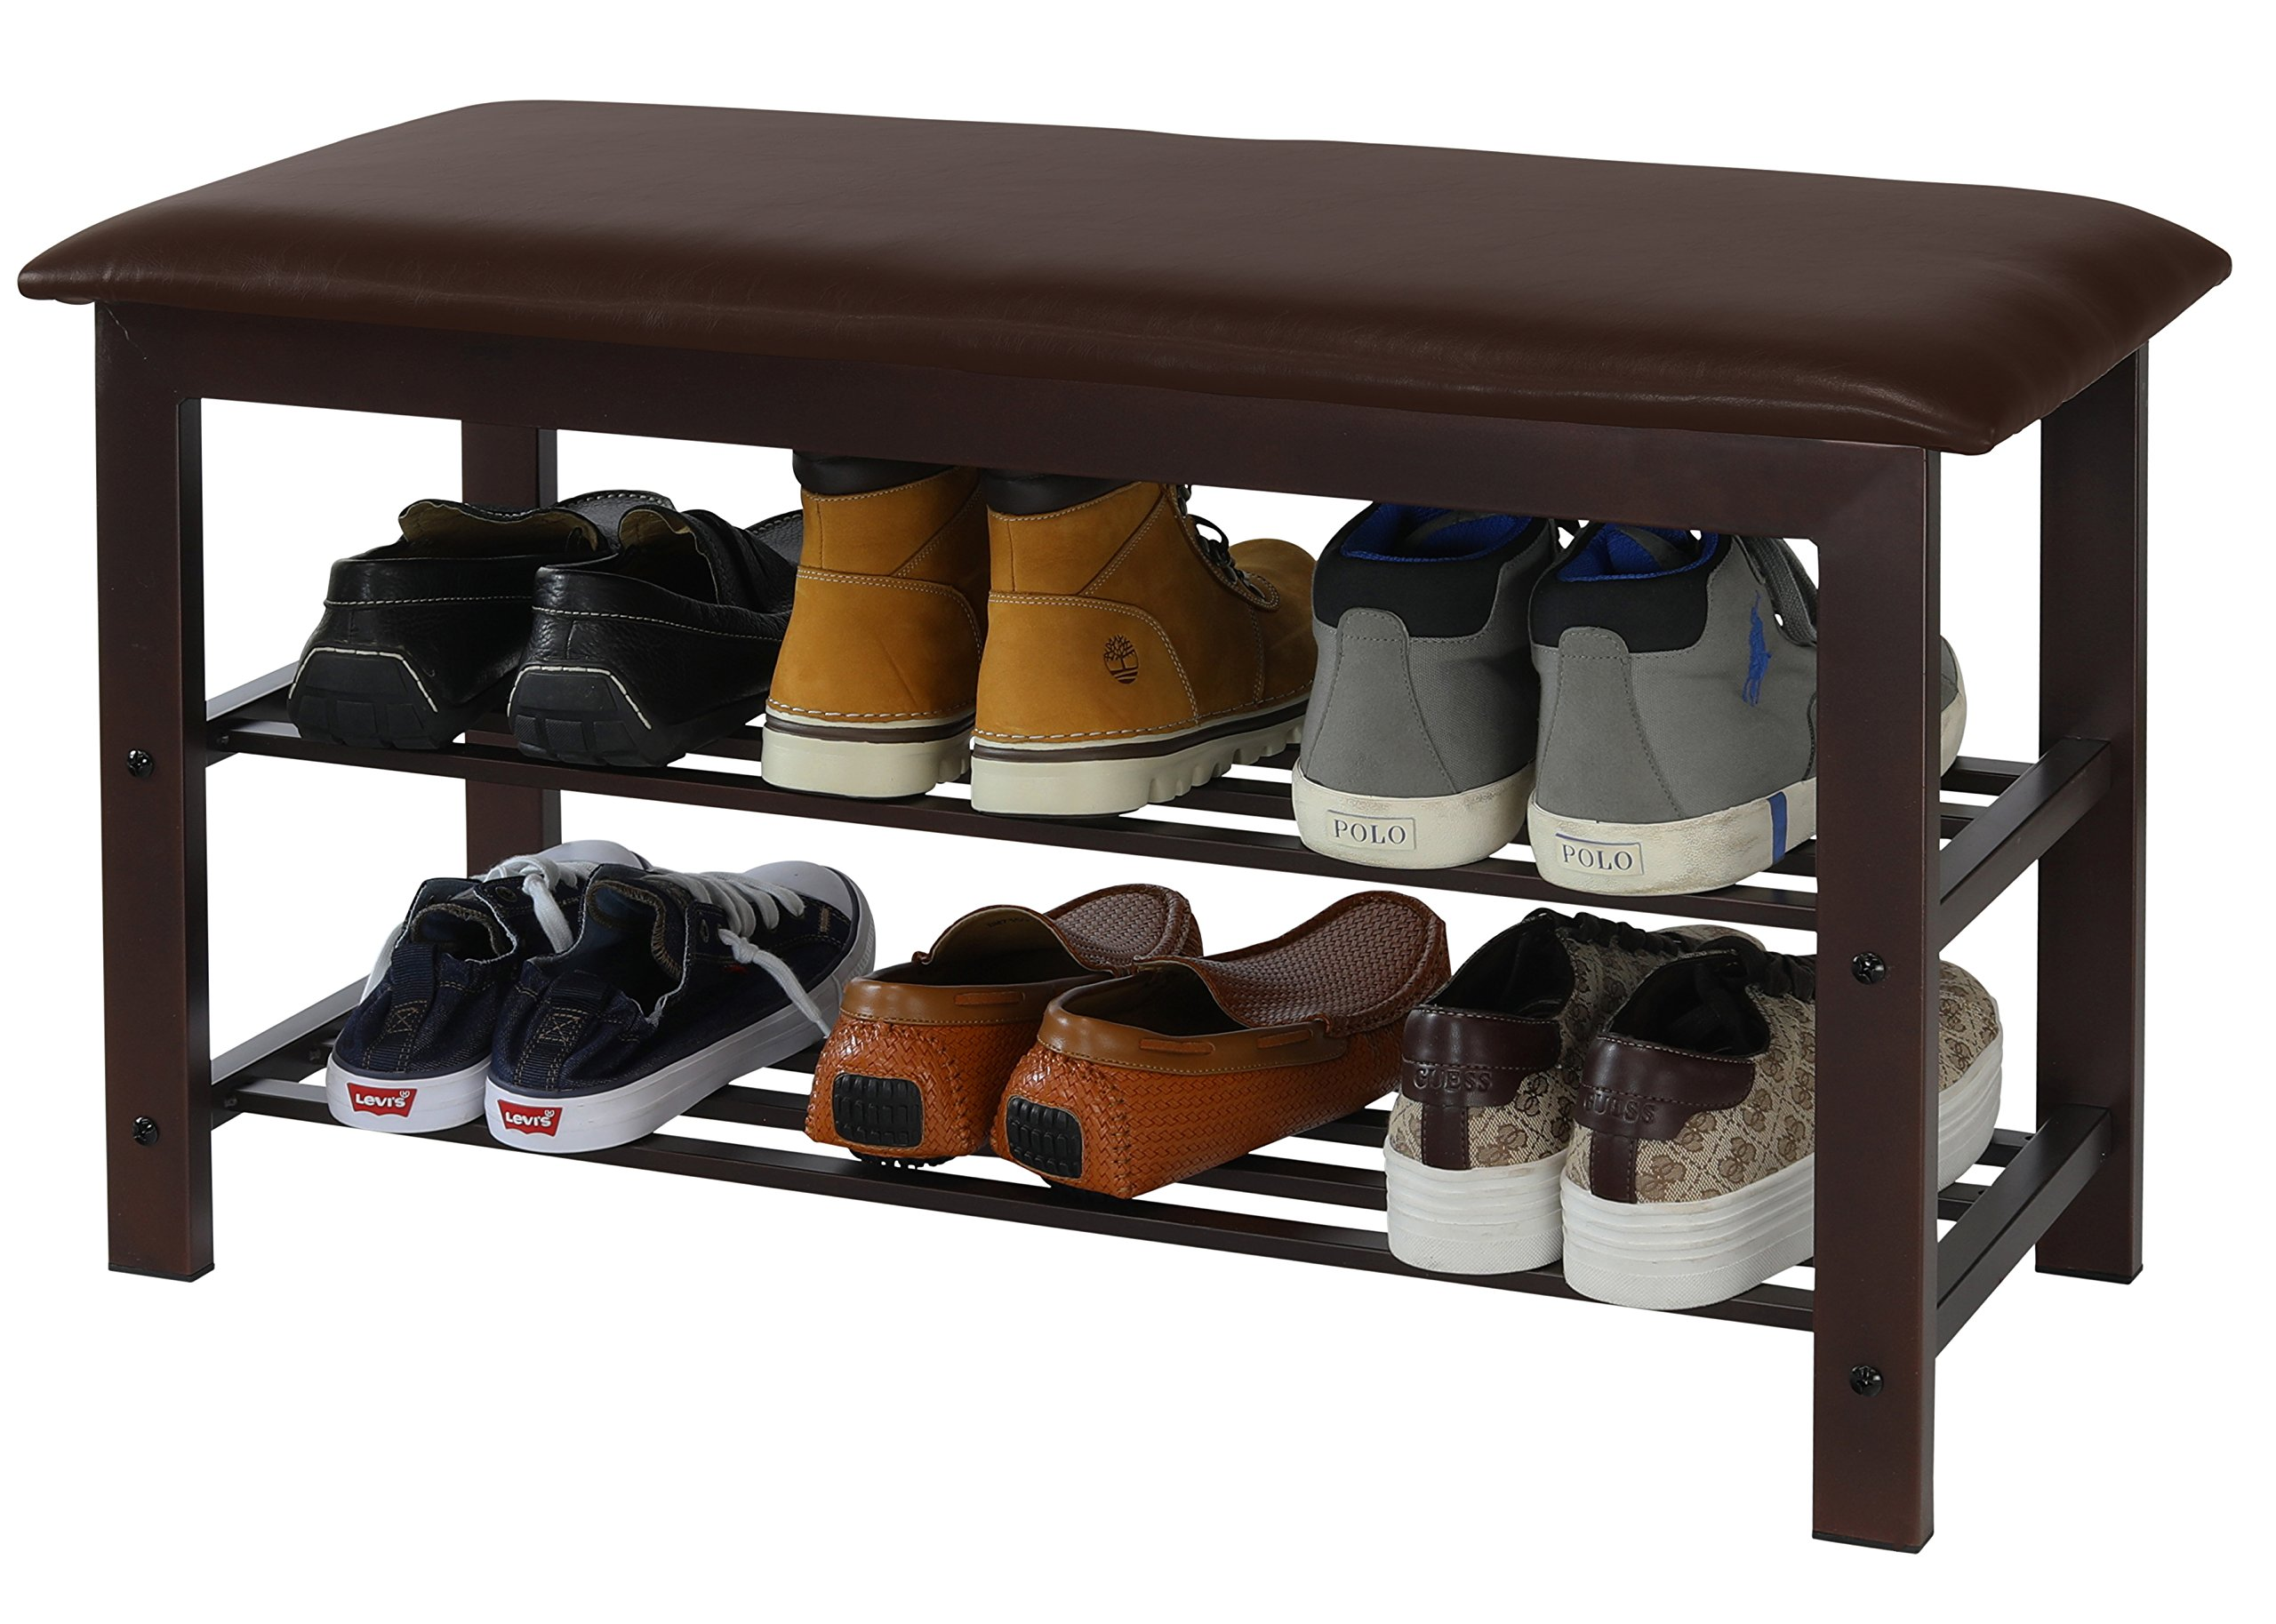 Simple Houseware Faux Leather Top Shoe Bench for Entryway Shoes Storage Organizer Rack by Simple Houseware (Image #3)